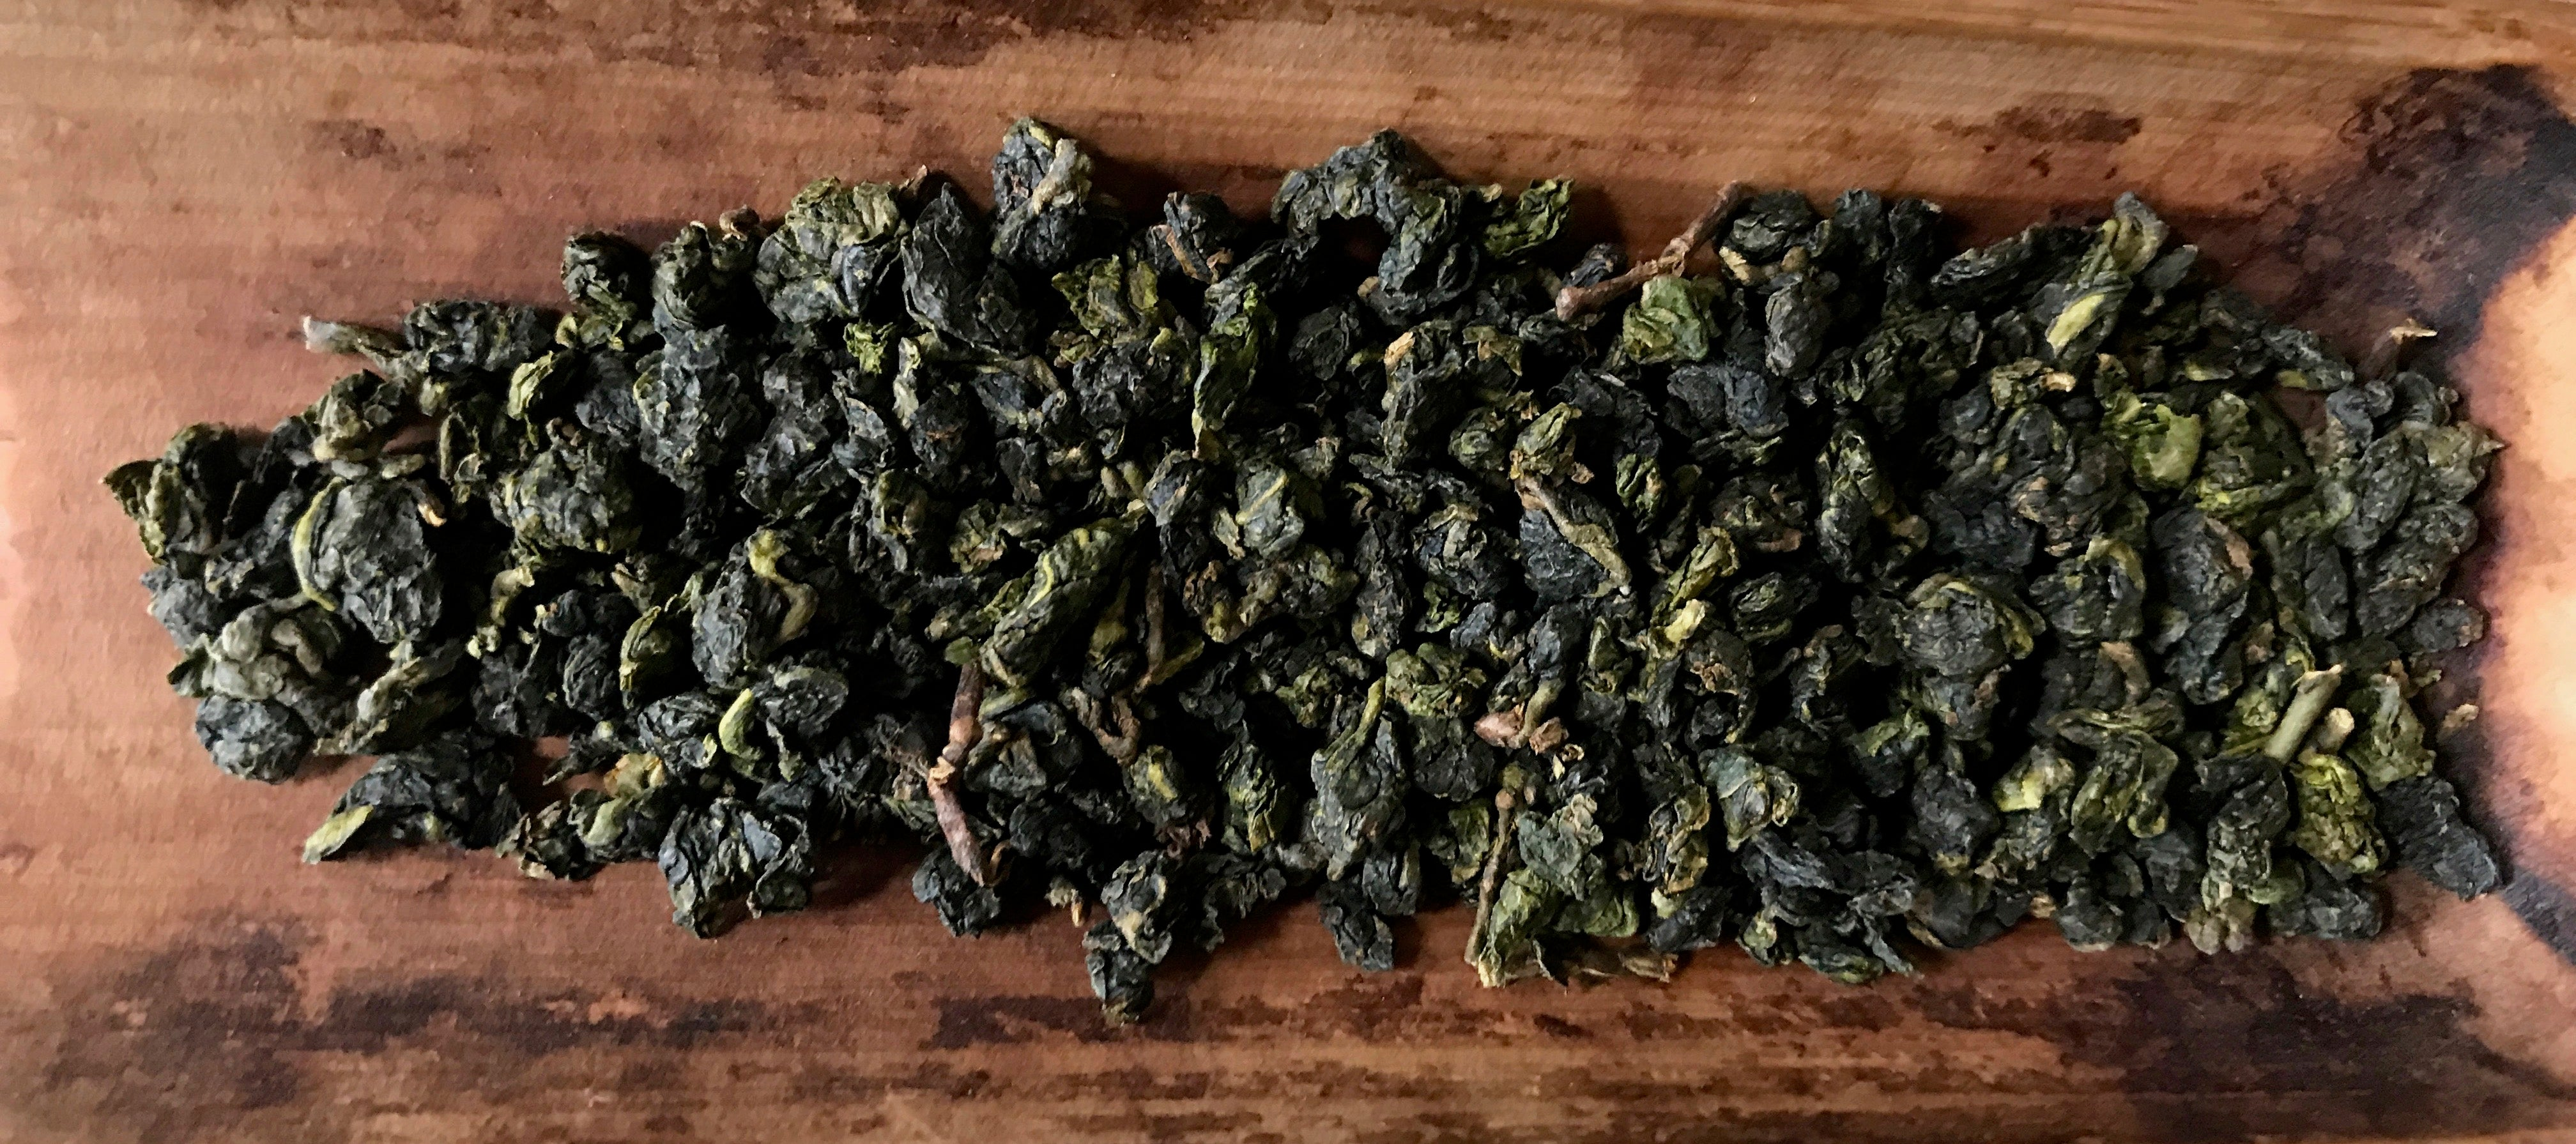 Eco-Farmed Dong Pian Jade Oolong Tea leaves in their rolled and dried form